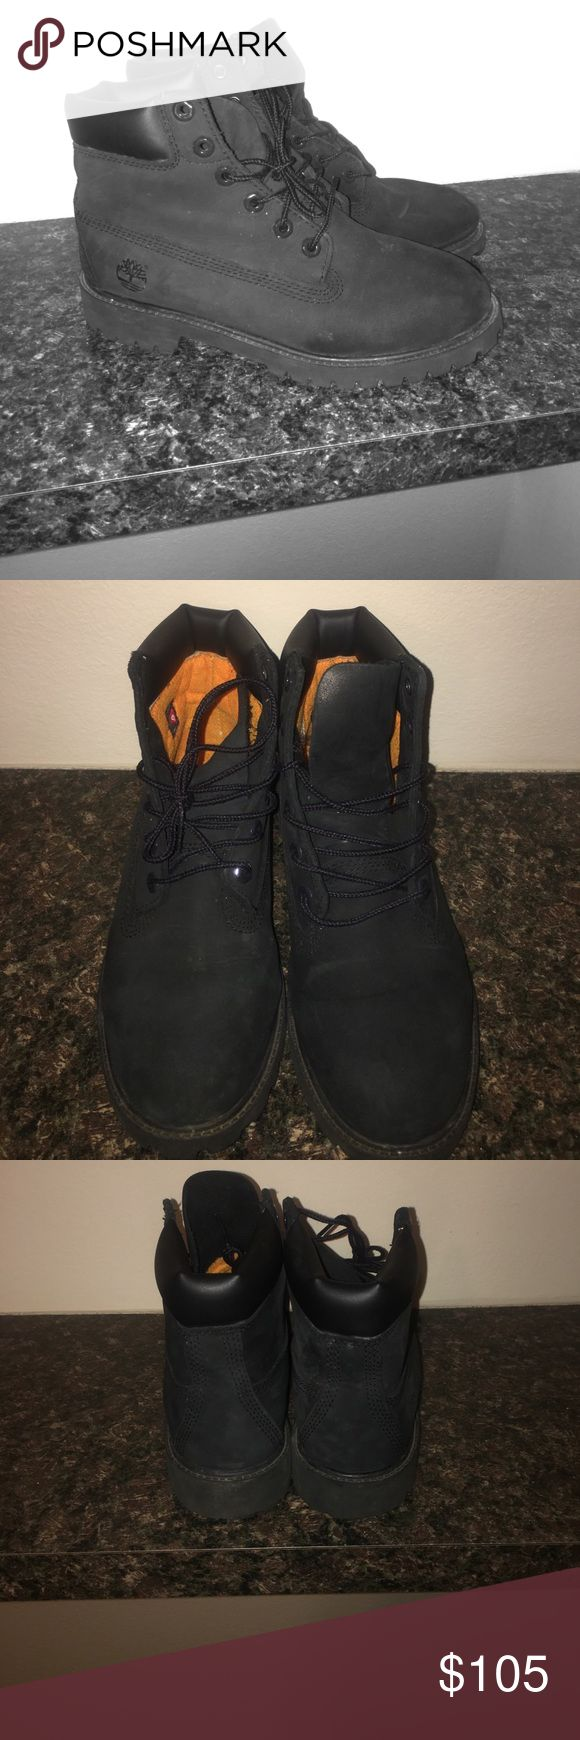 Black timberland boots These are black timberland boots. They are a US men's 6 (so a woman's size 7.5). They have only been worn a couple of times and are in great condition. Timberland Shoes Winter & Rain Boots